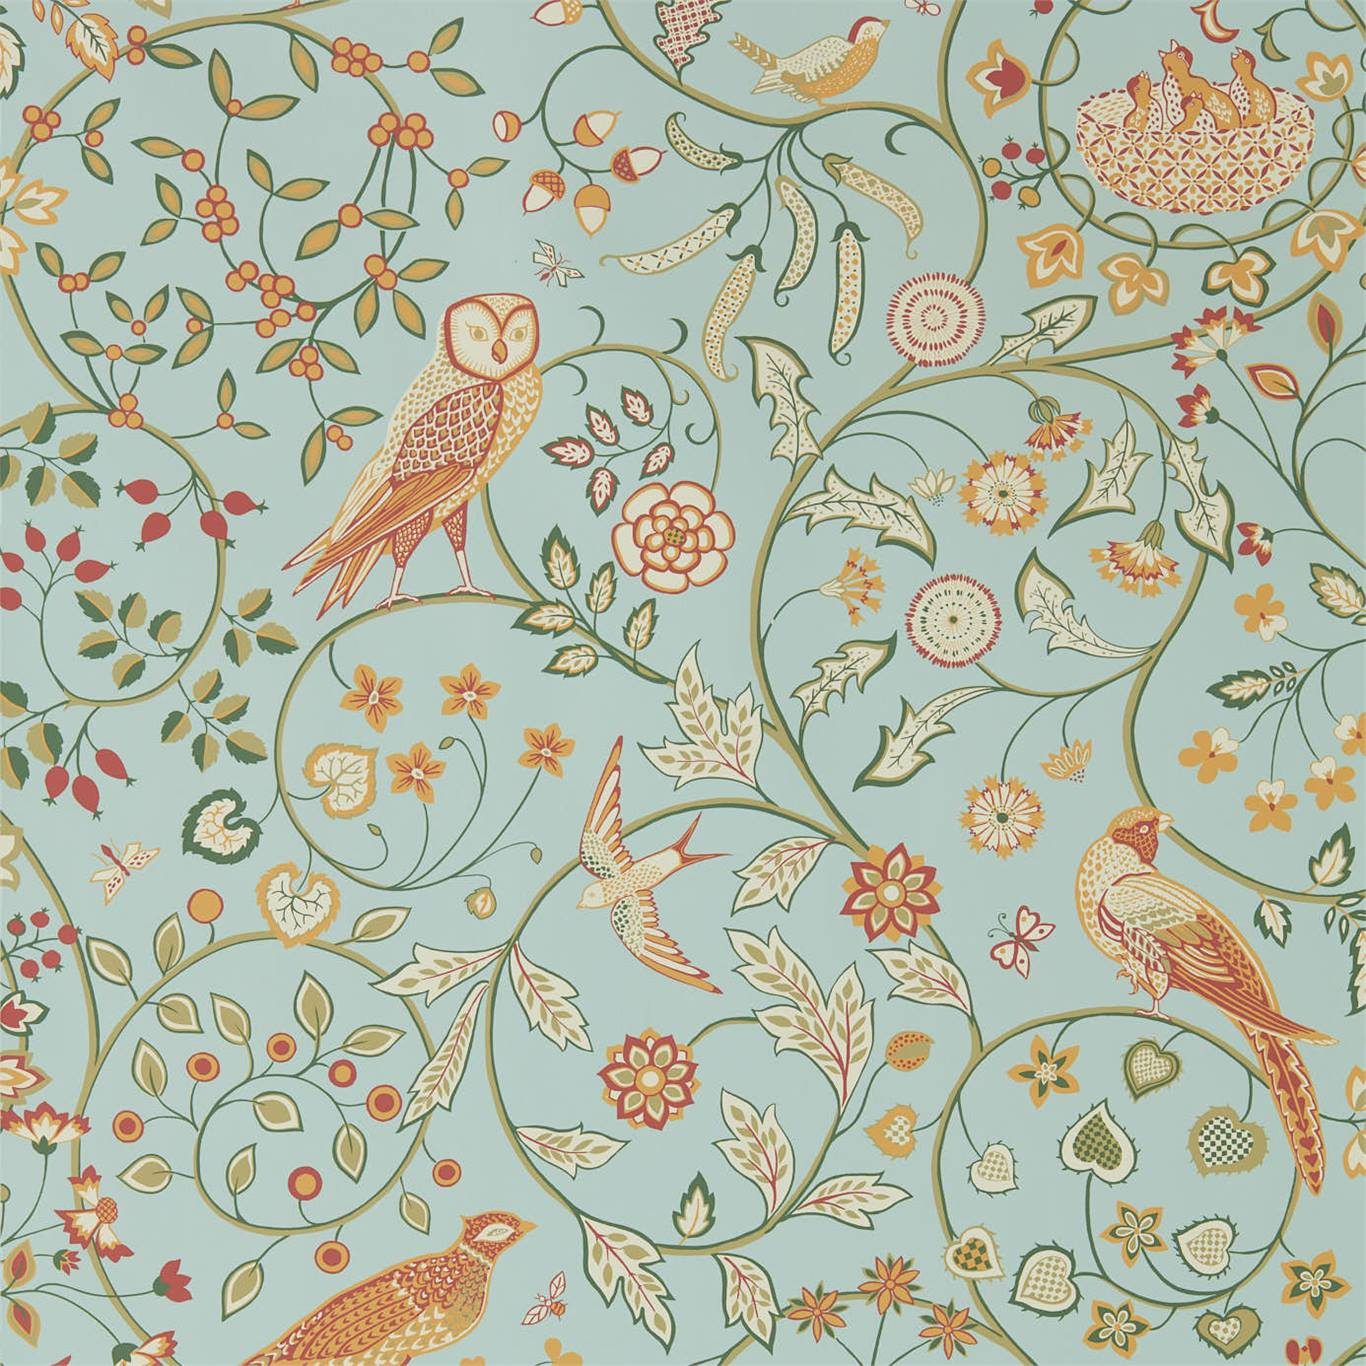 Newil wallpaper by Morris & Co.